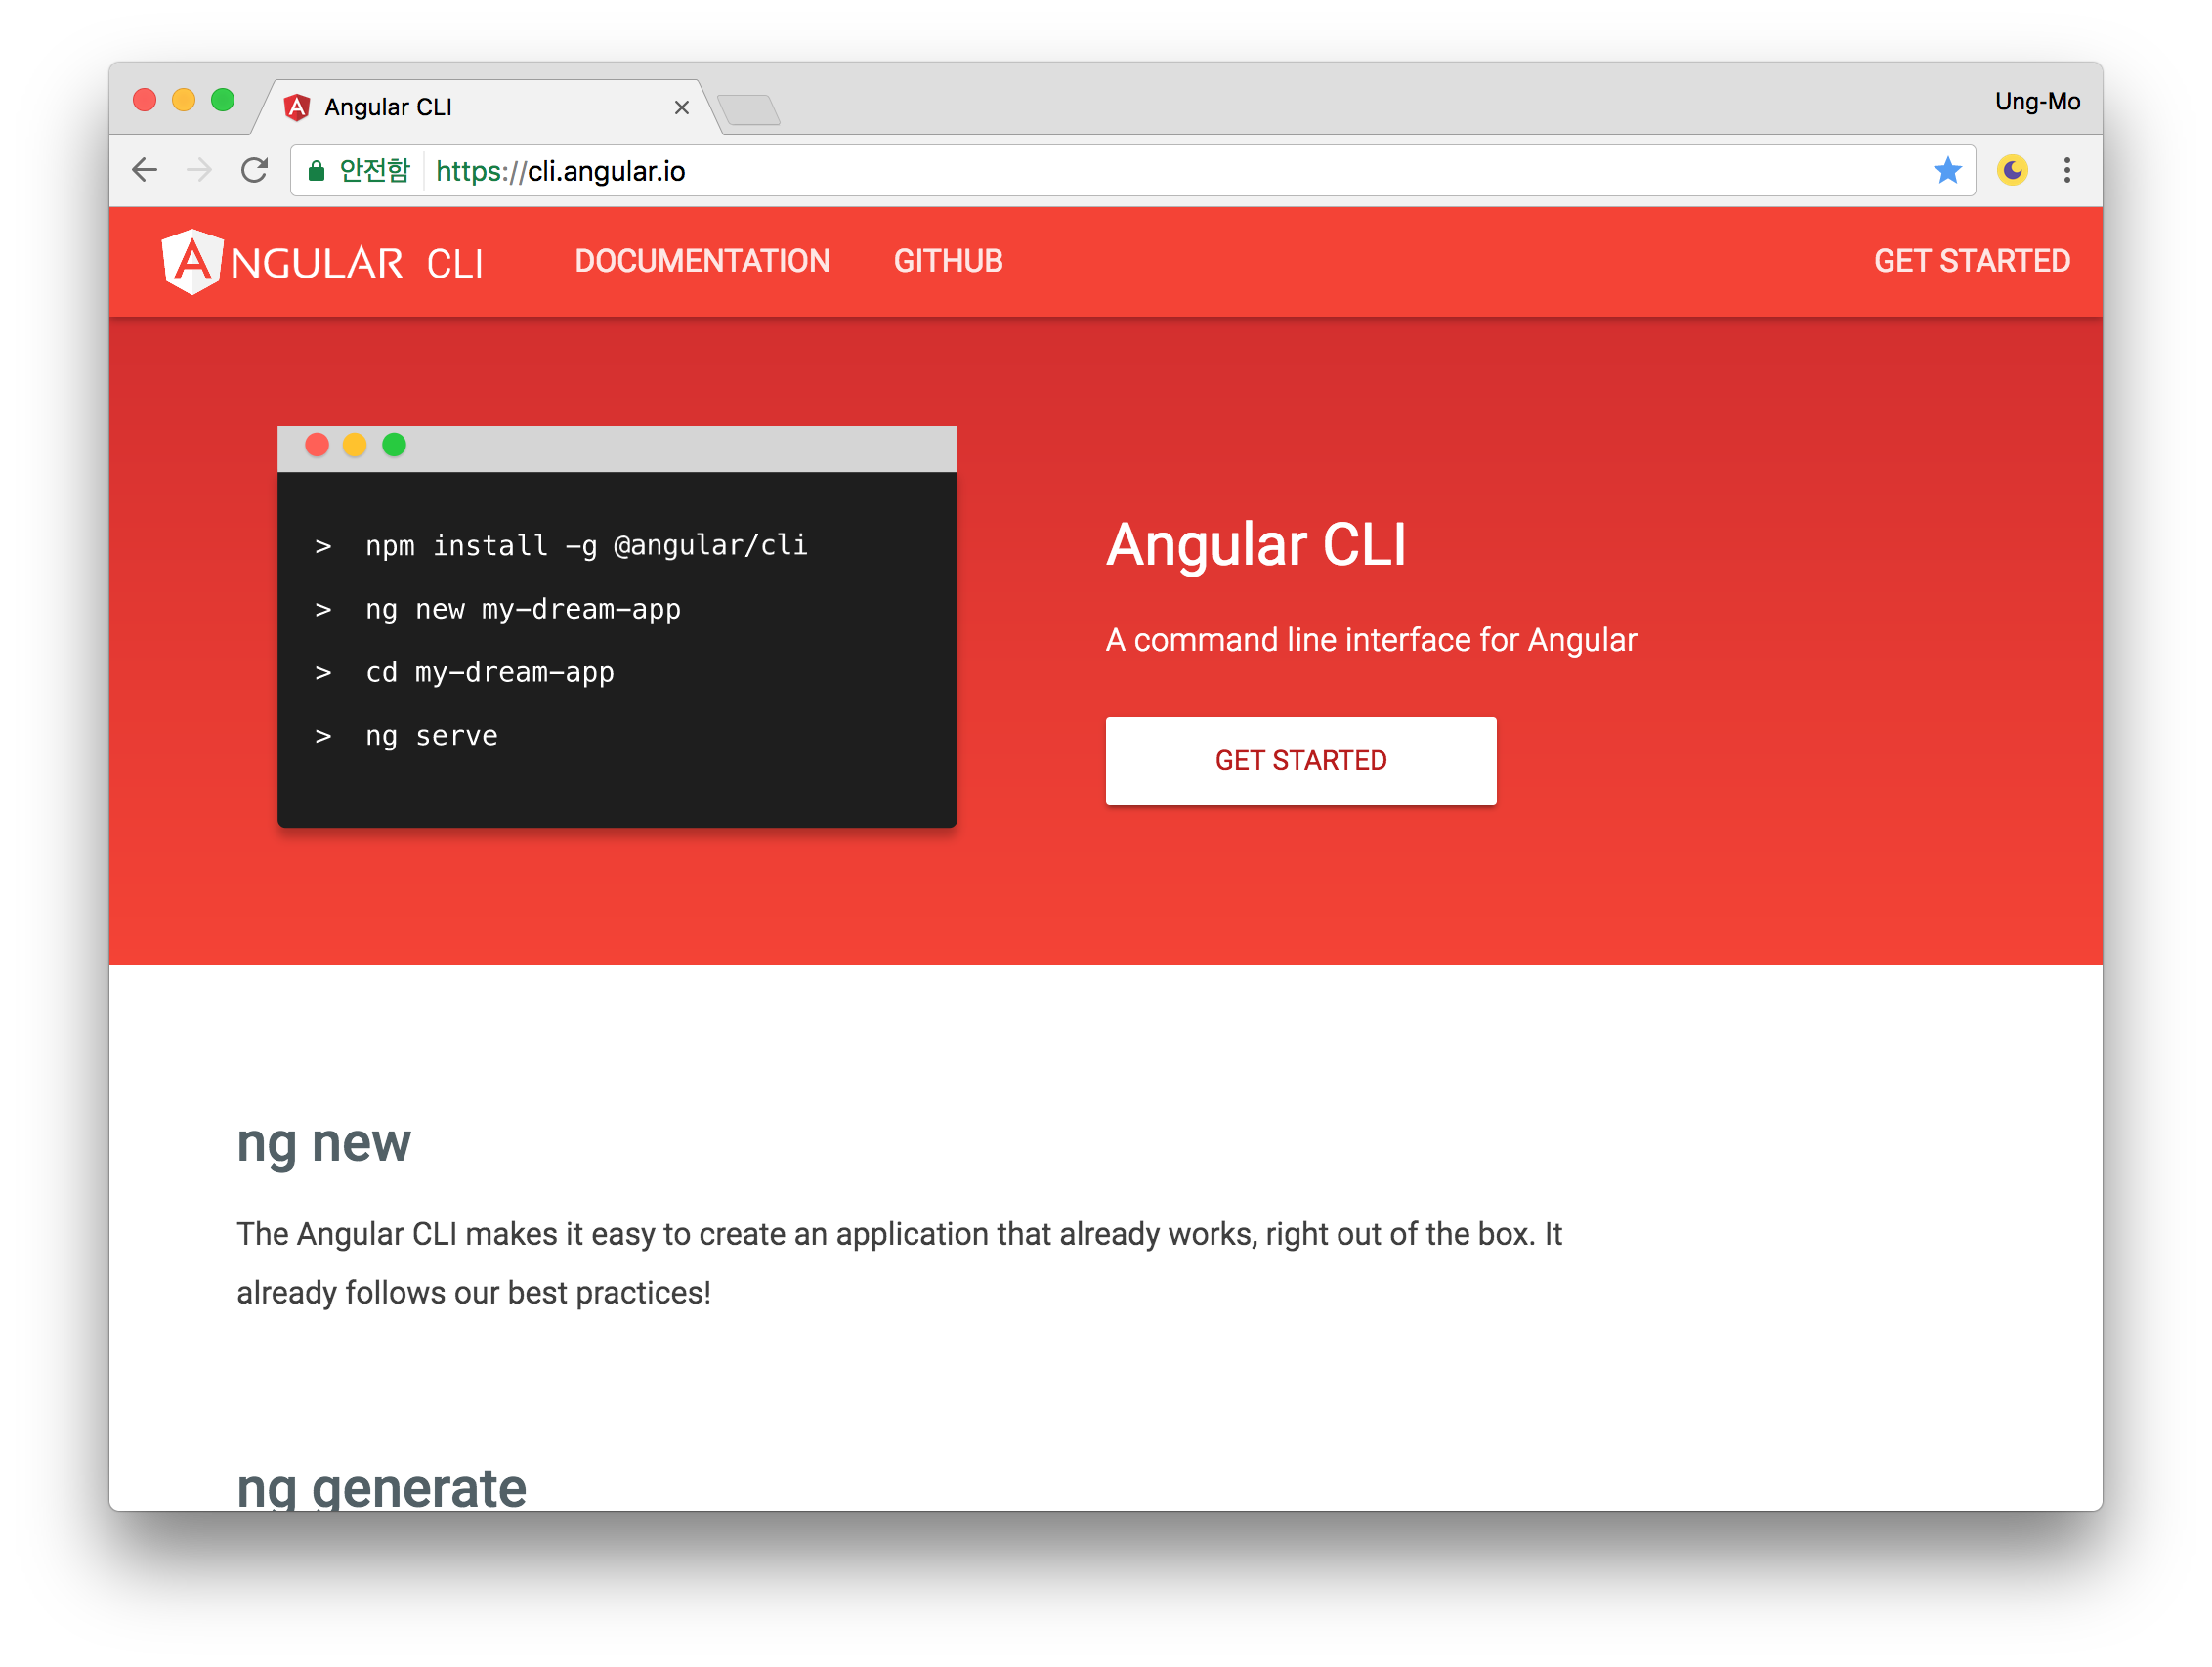 angular-cli-website